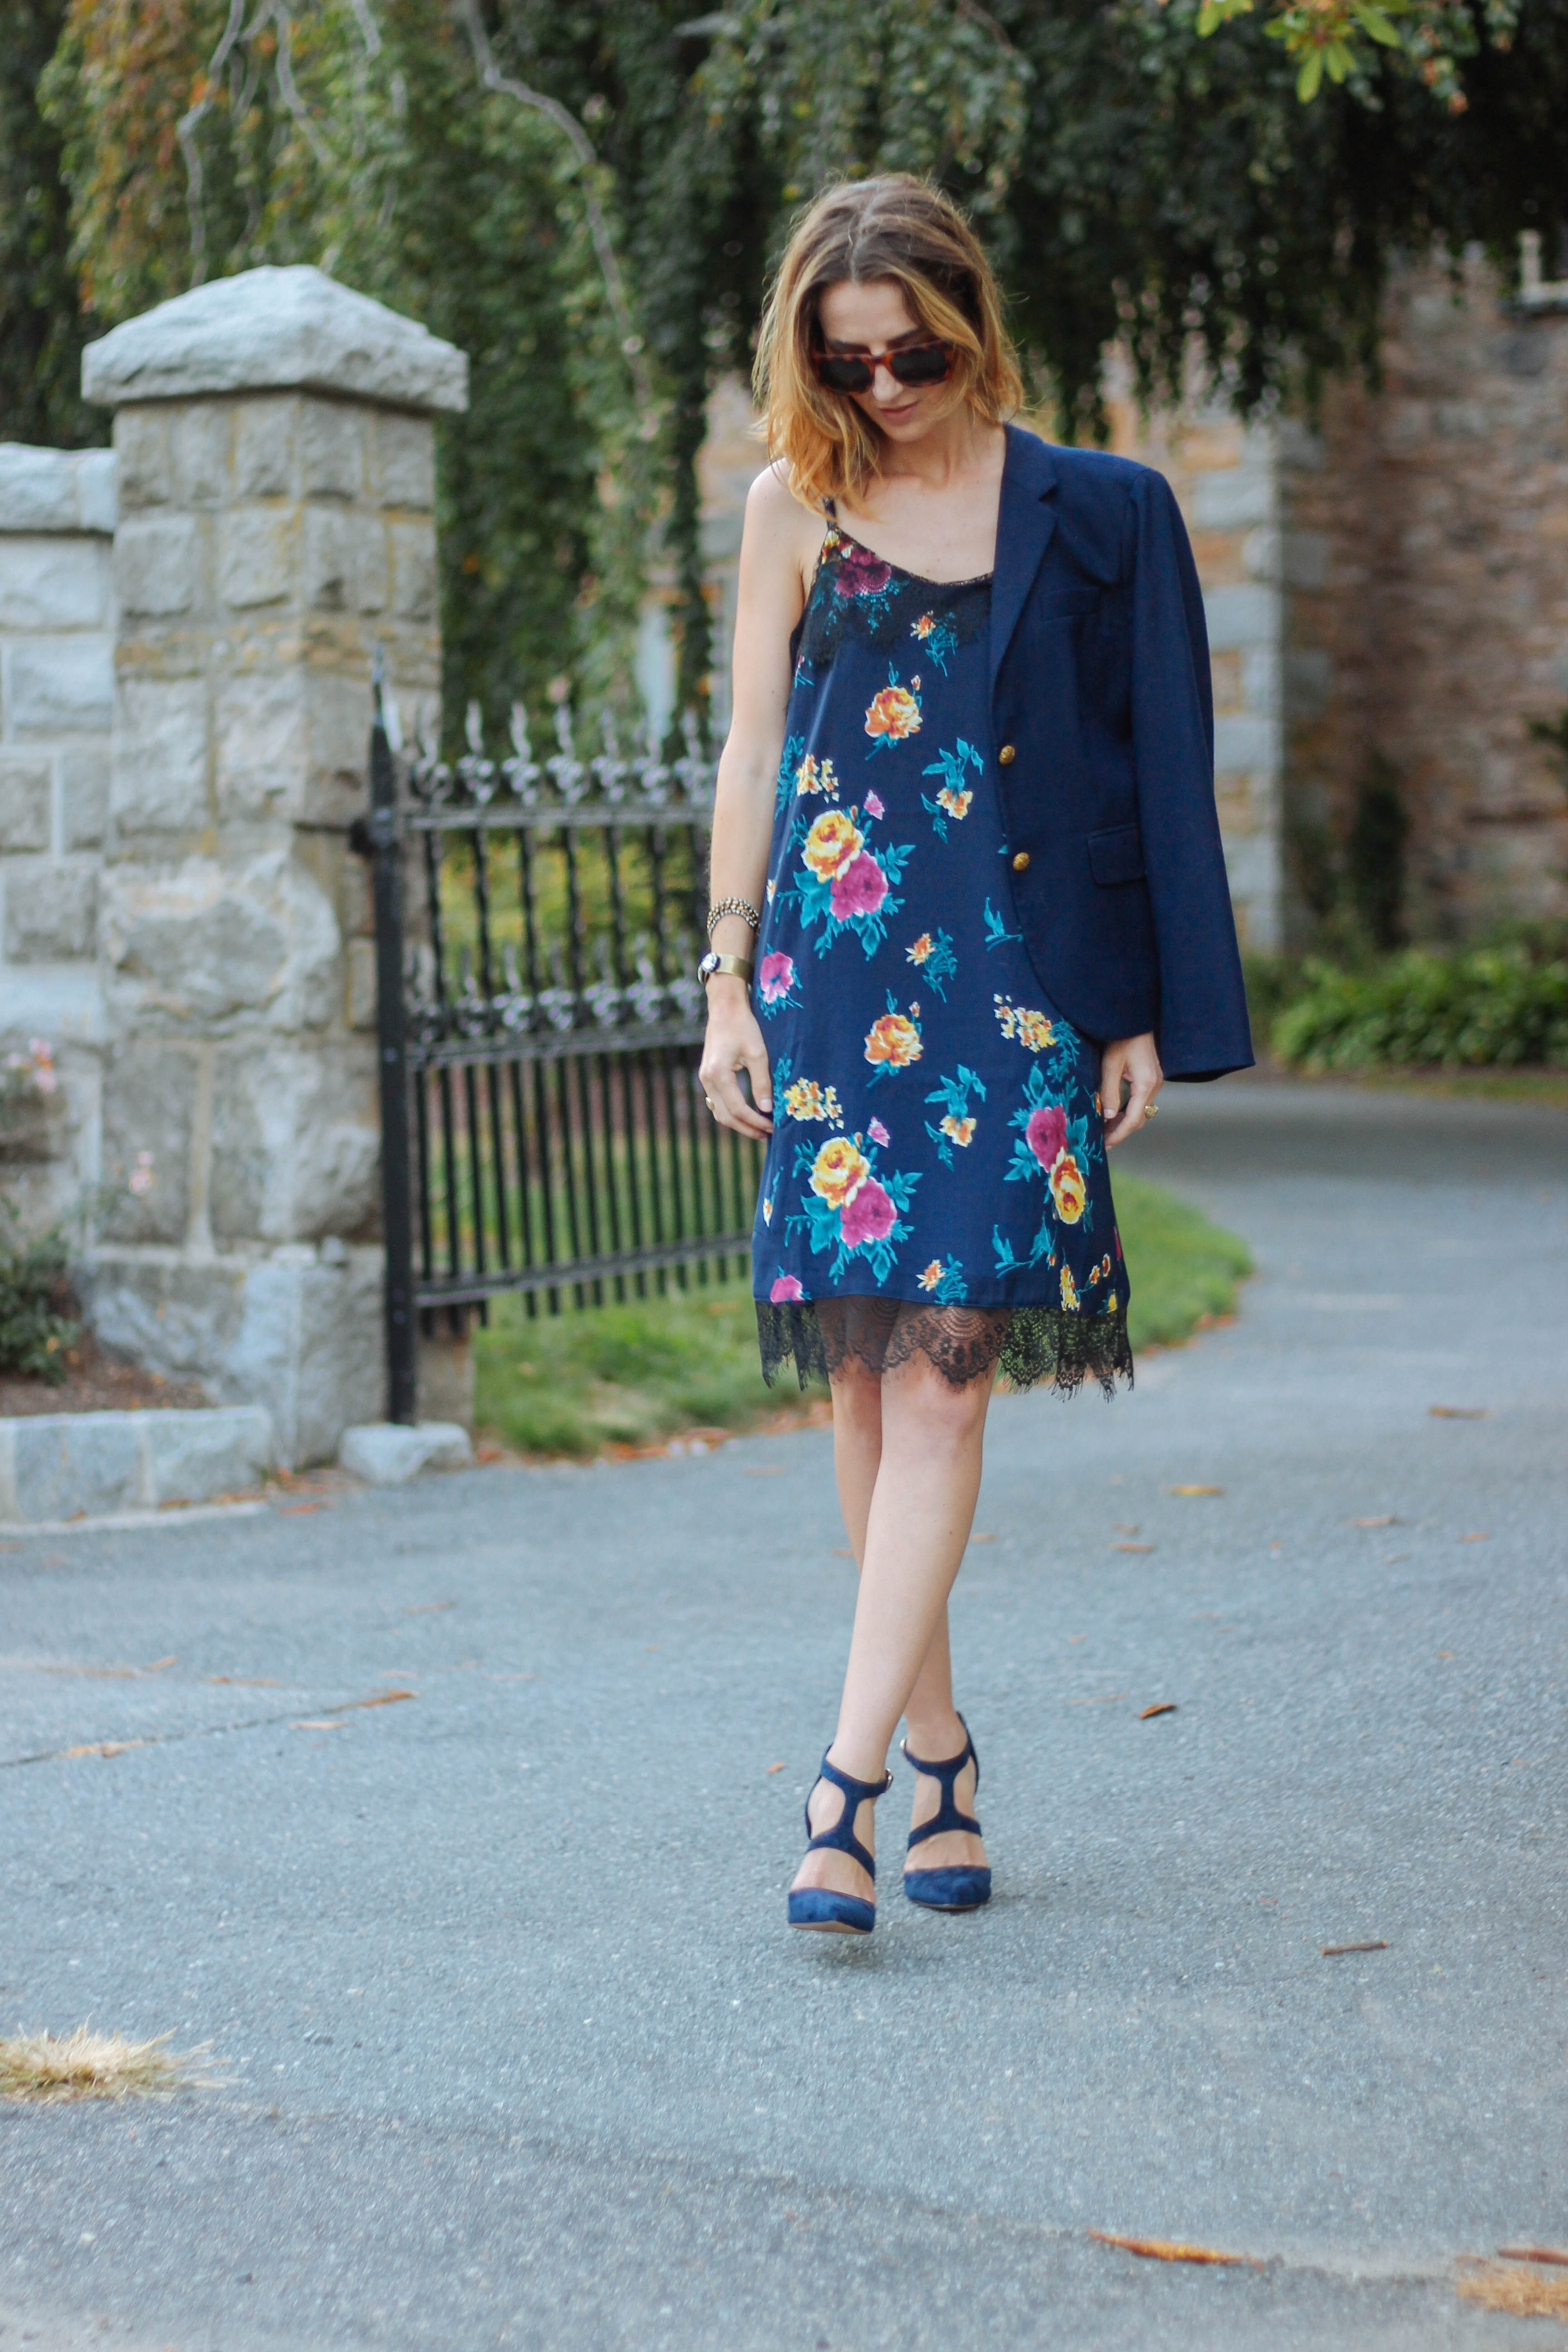 FLORAL MIDI DRESS - Prosecco & Plaid - A RI based life and style blog